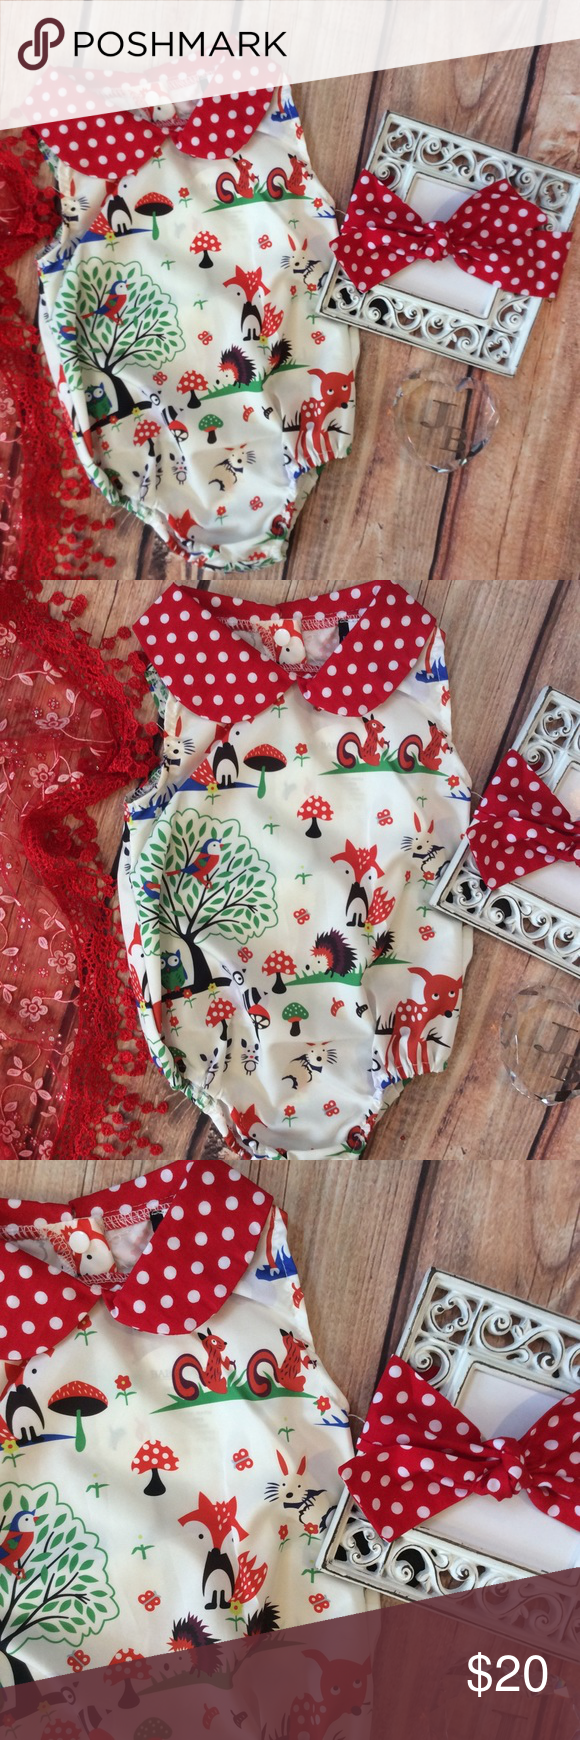 276f1b3150ba Boutique Baby Girl Romper   Headwrap Precious 2pc Romper   Head wrap Set.  Outdoorsy theme printed romper with red   white polkadot collar and headband  to ...